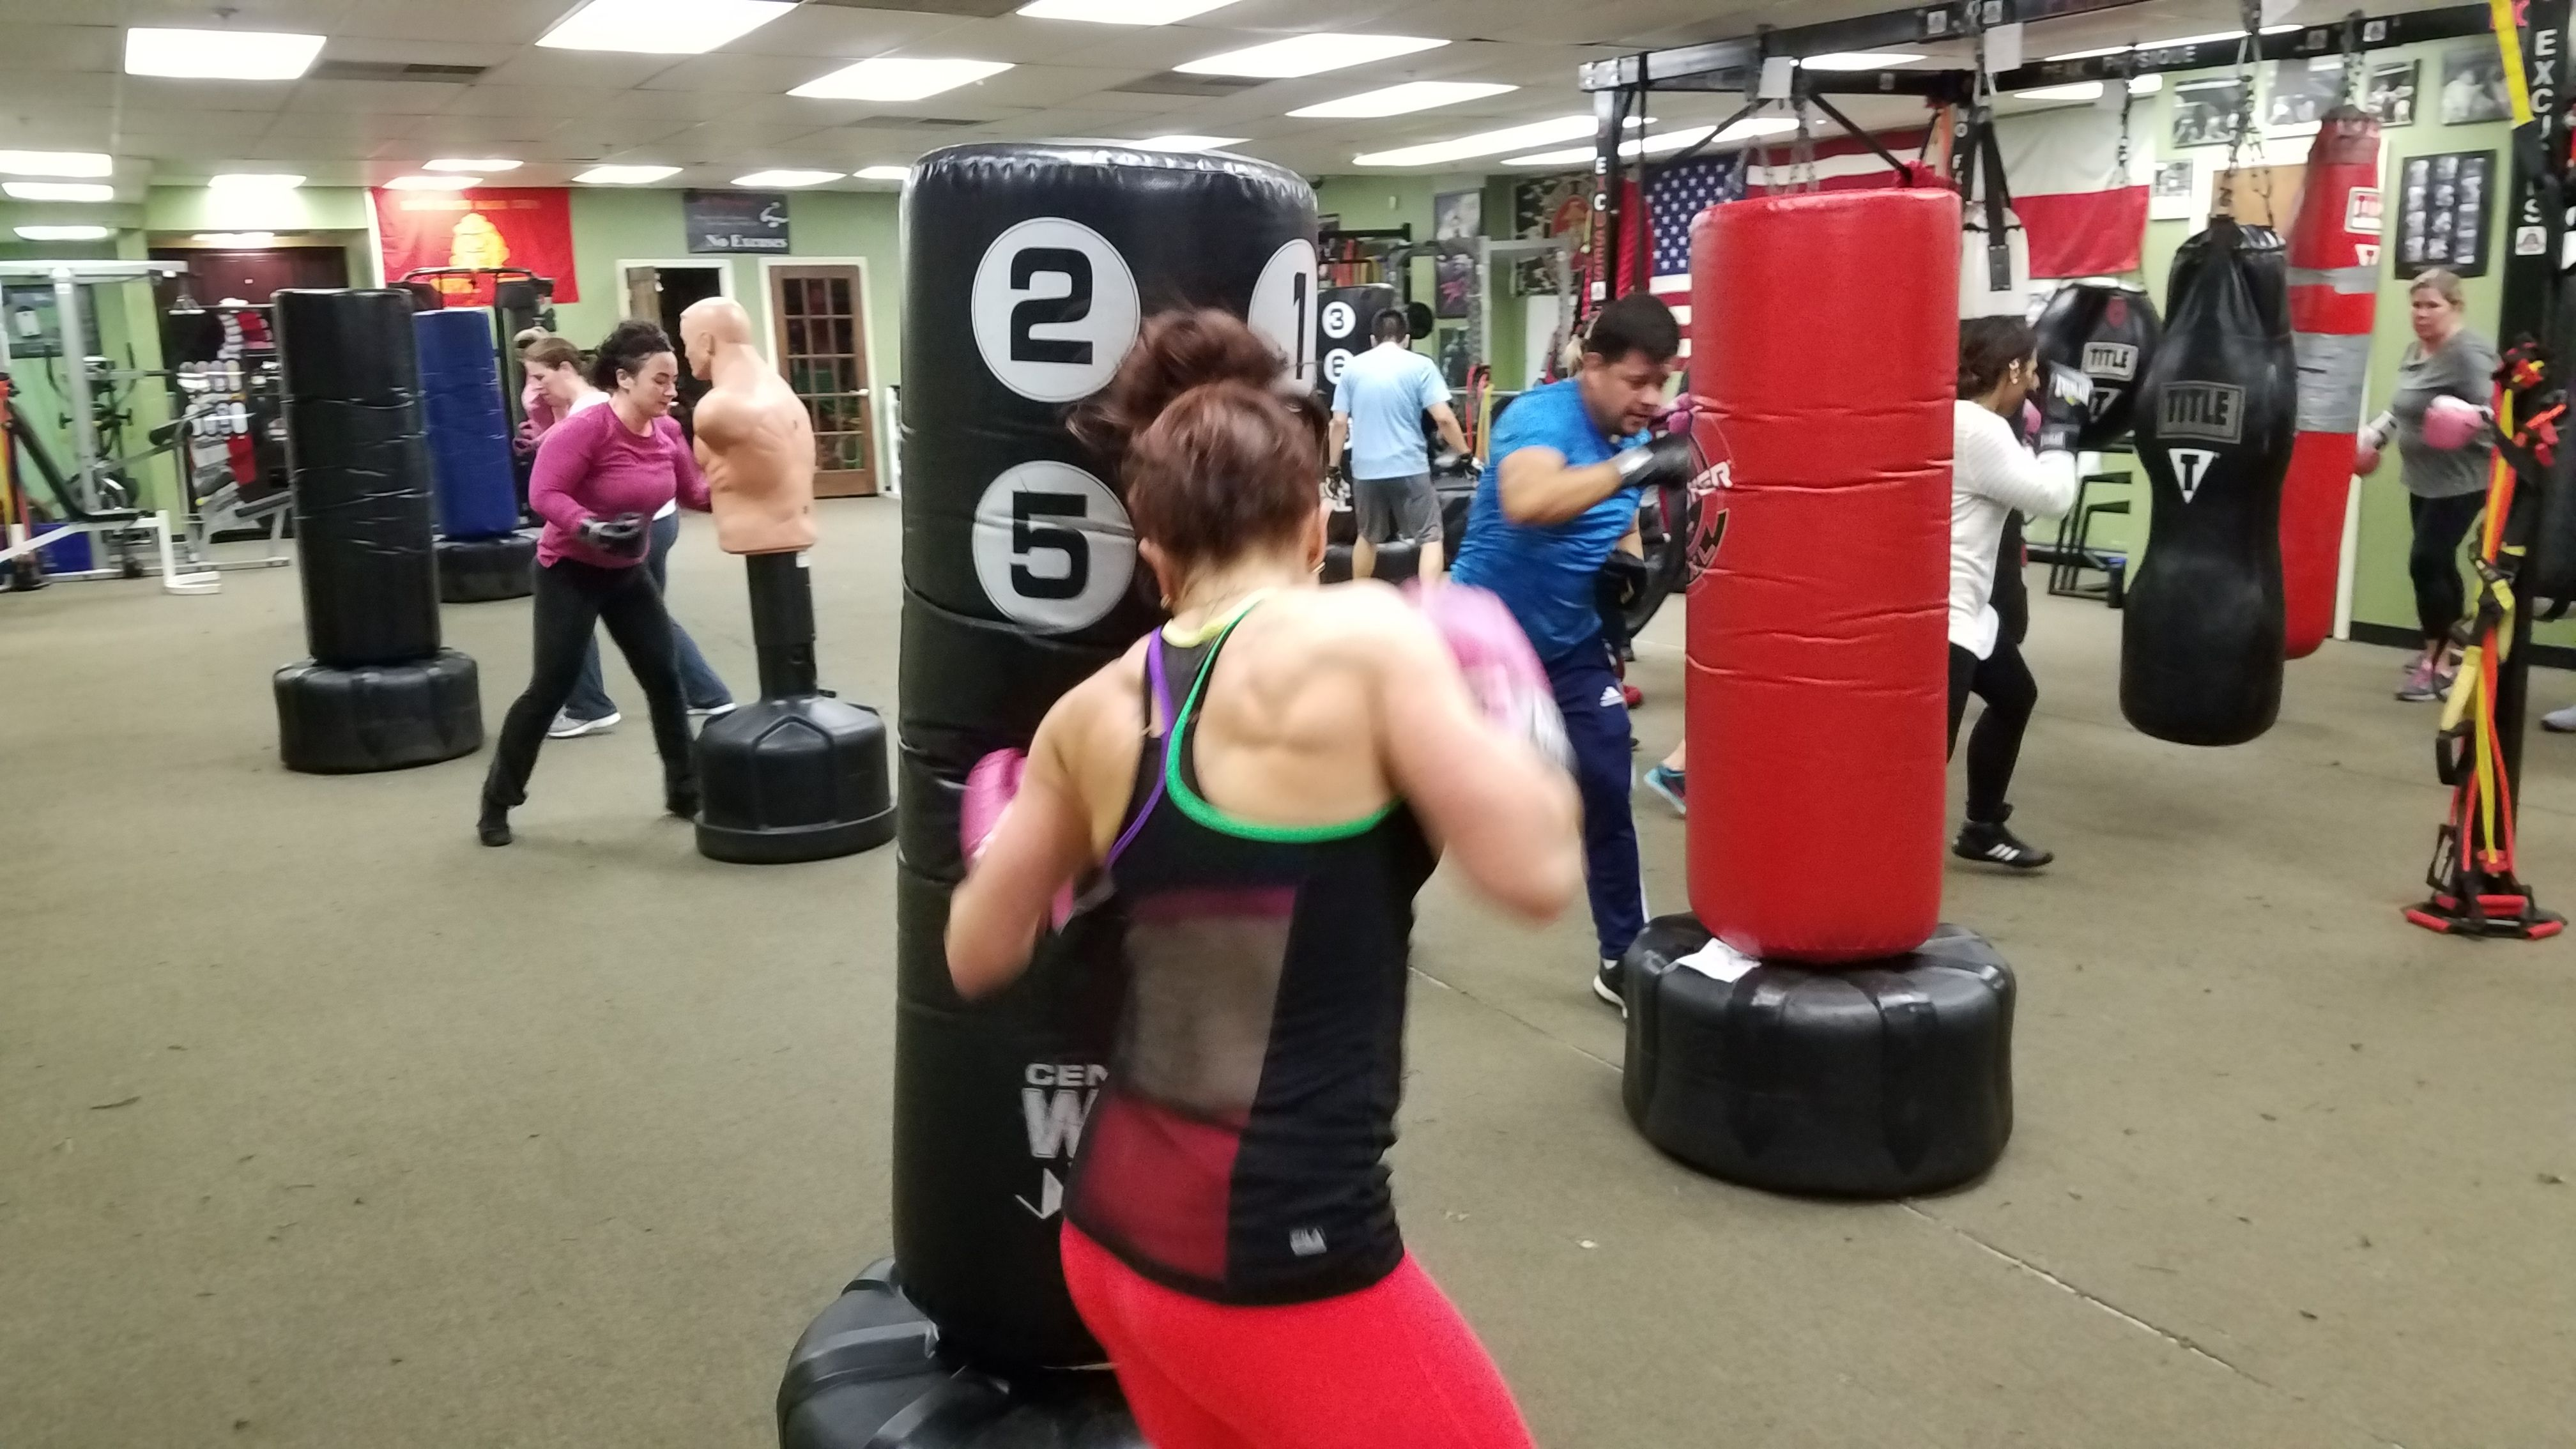 Peak Physique Personal Training Boot Camp Boxing No Excuses Boot Camp Class Kickboxing Classes Bootcamp